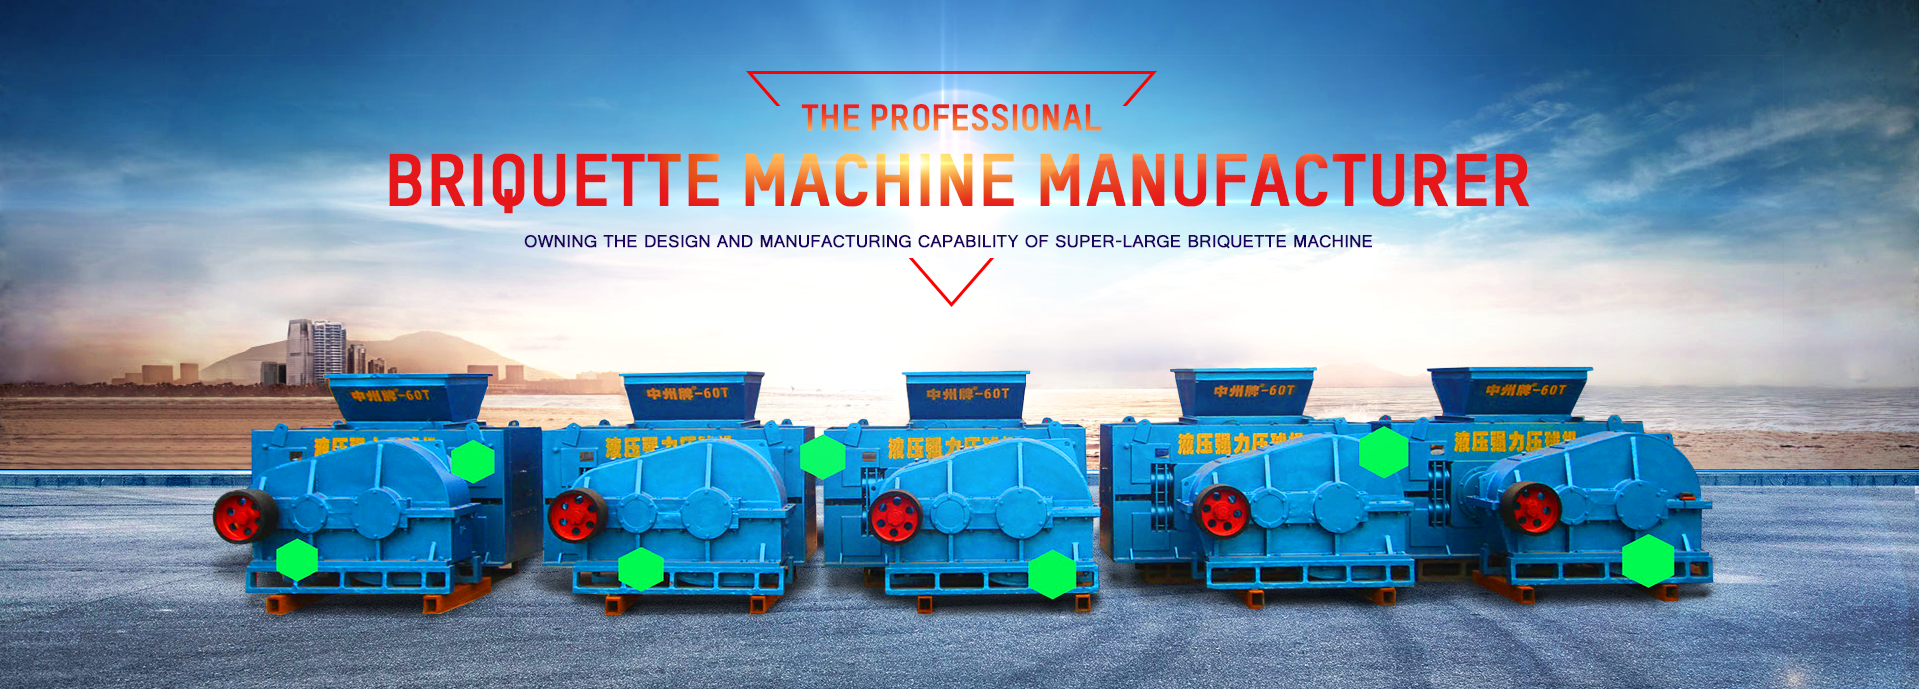 briquette machine manufacturer